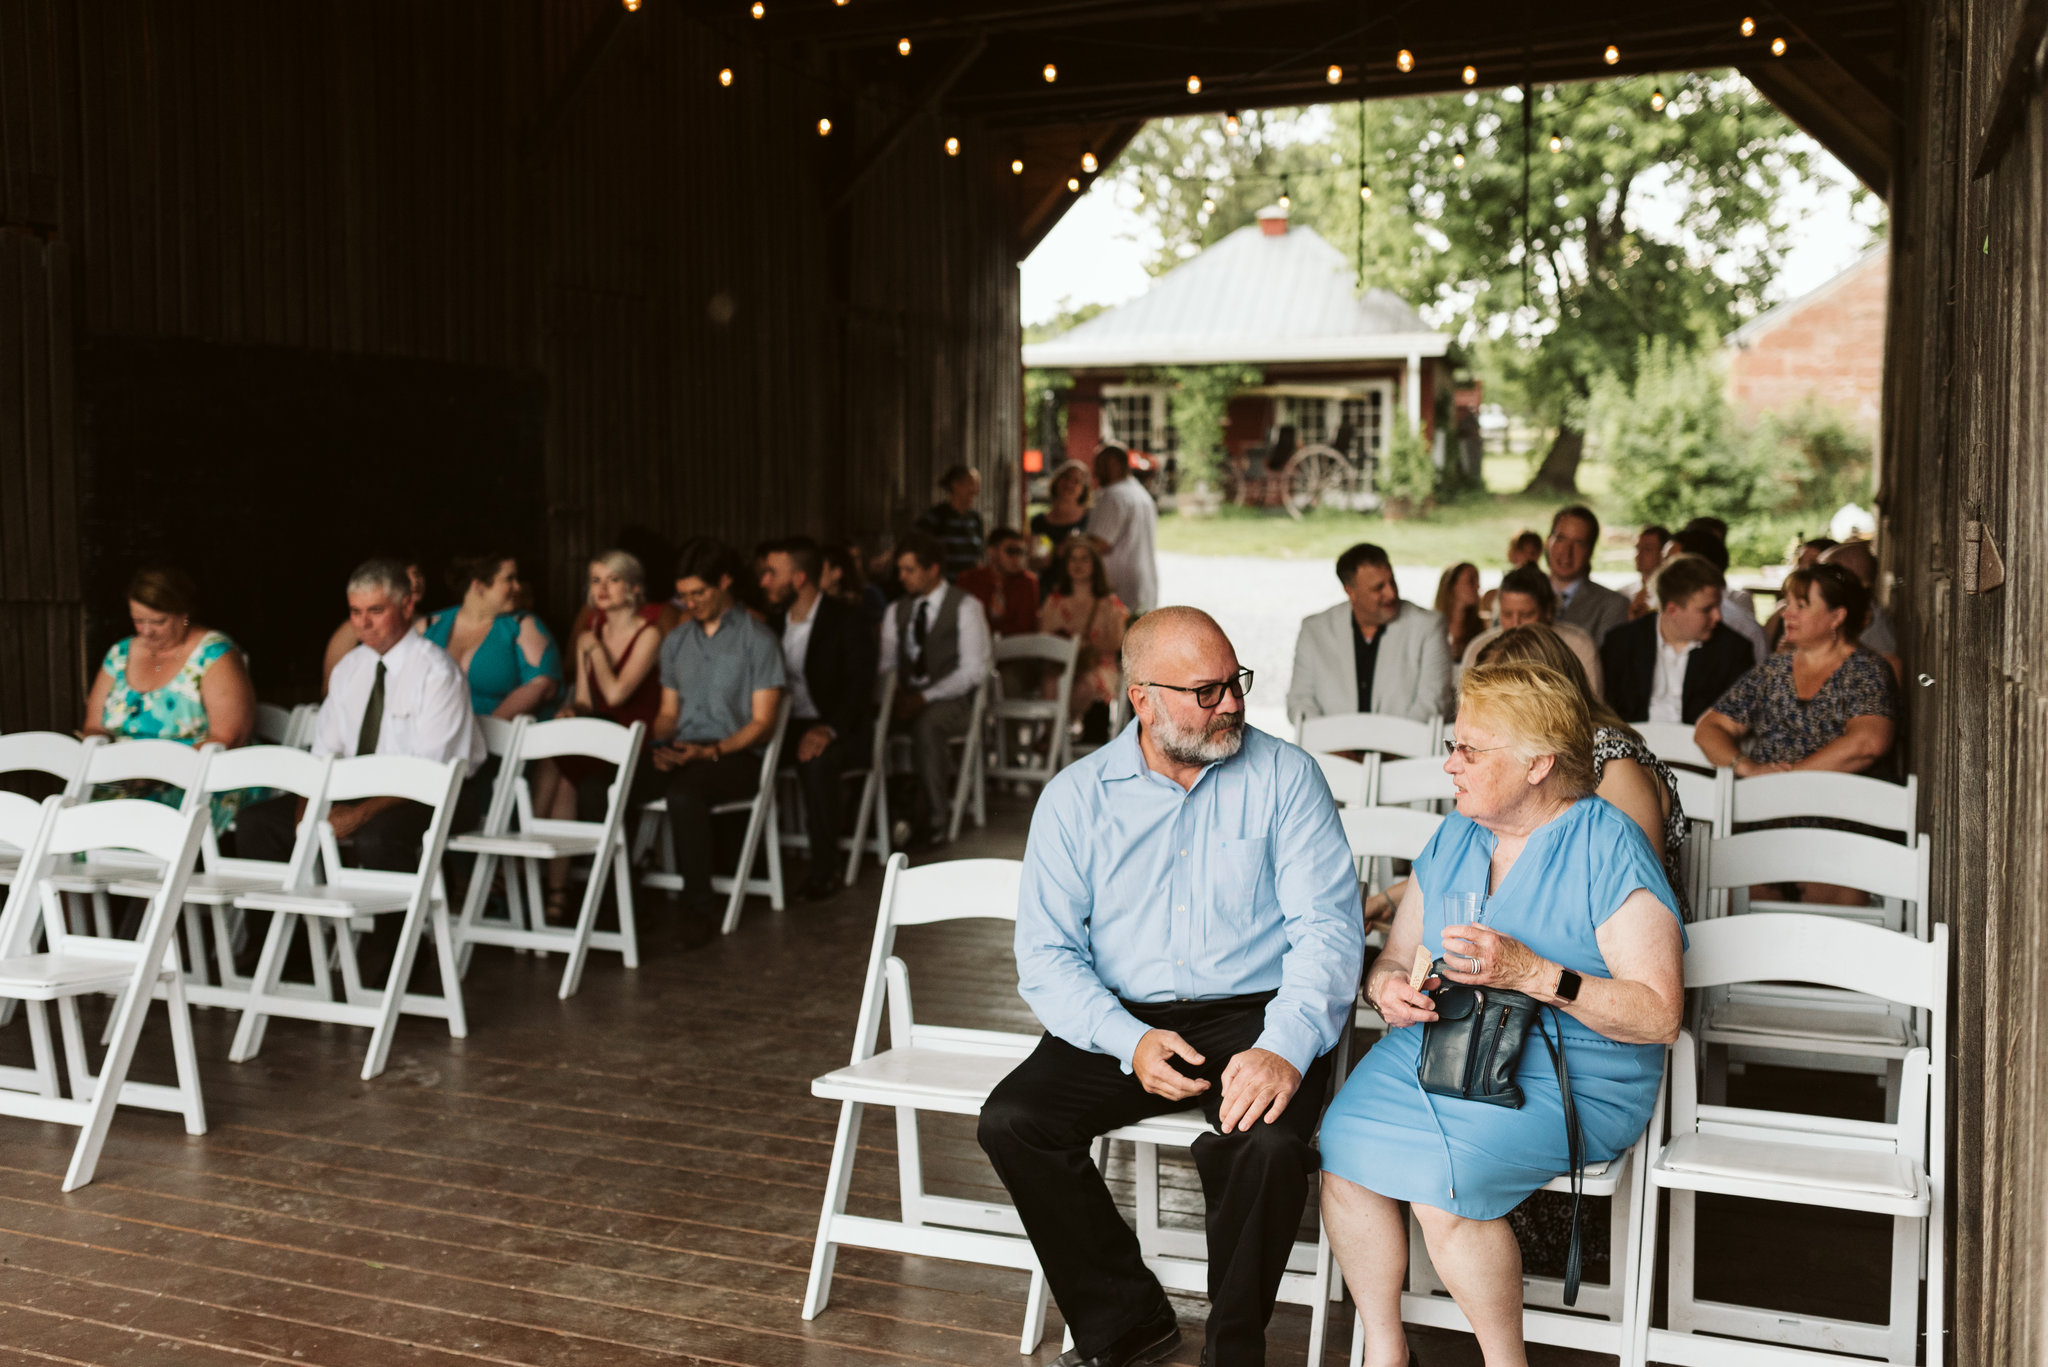 Rocklands Farm, Maryland, Intimate Wedding, Baltimore Wedding Photographer, Sungold Flower Co, Rustic, Romantic, Barn Wedding, Wedding Guests Talking Before Ceremony Begins